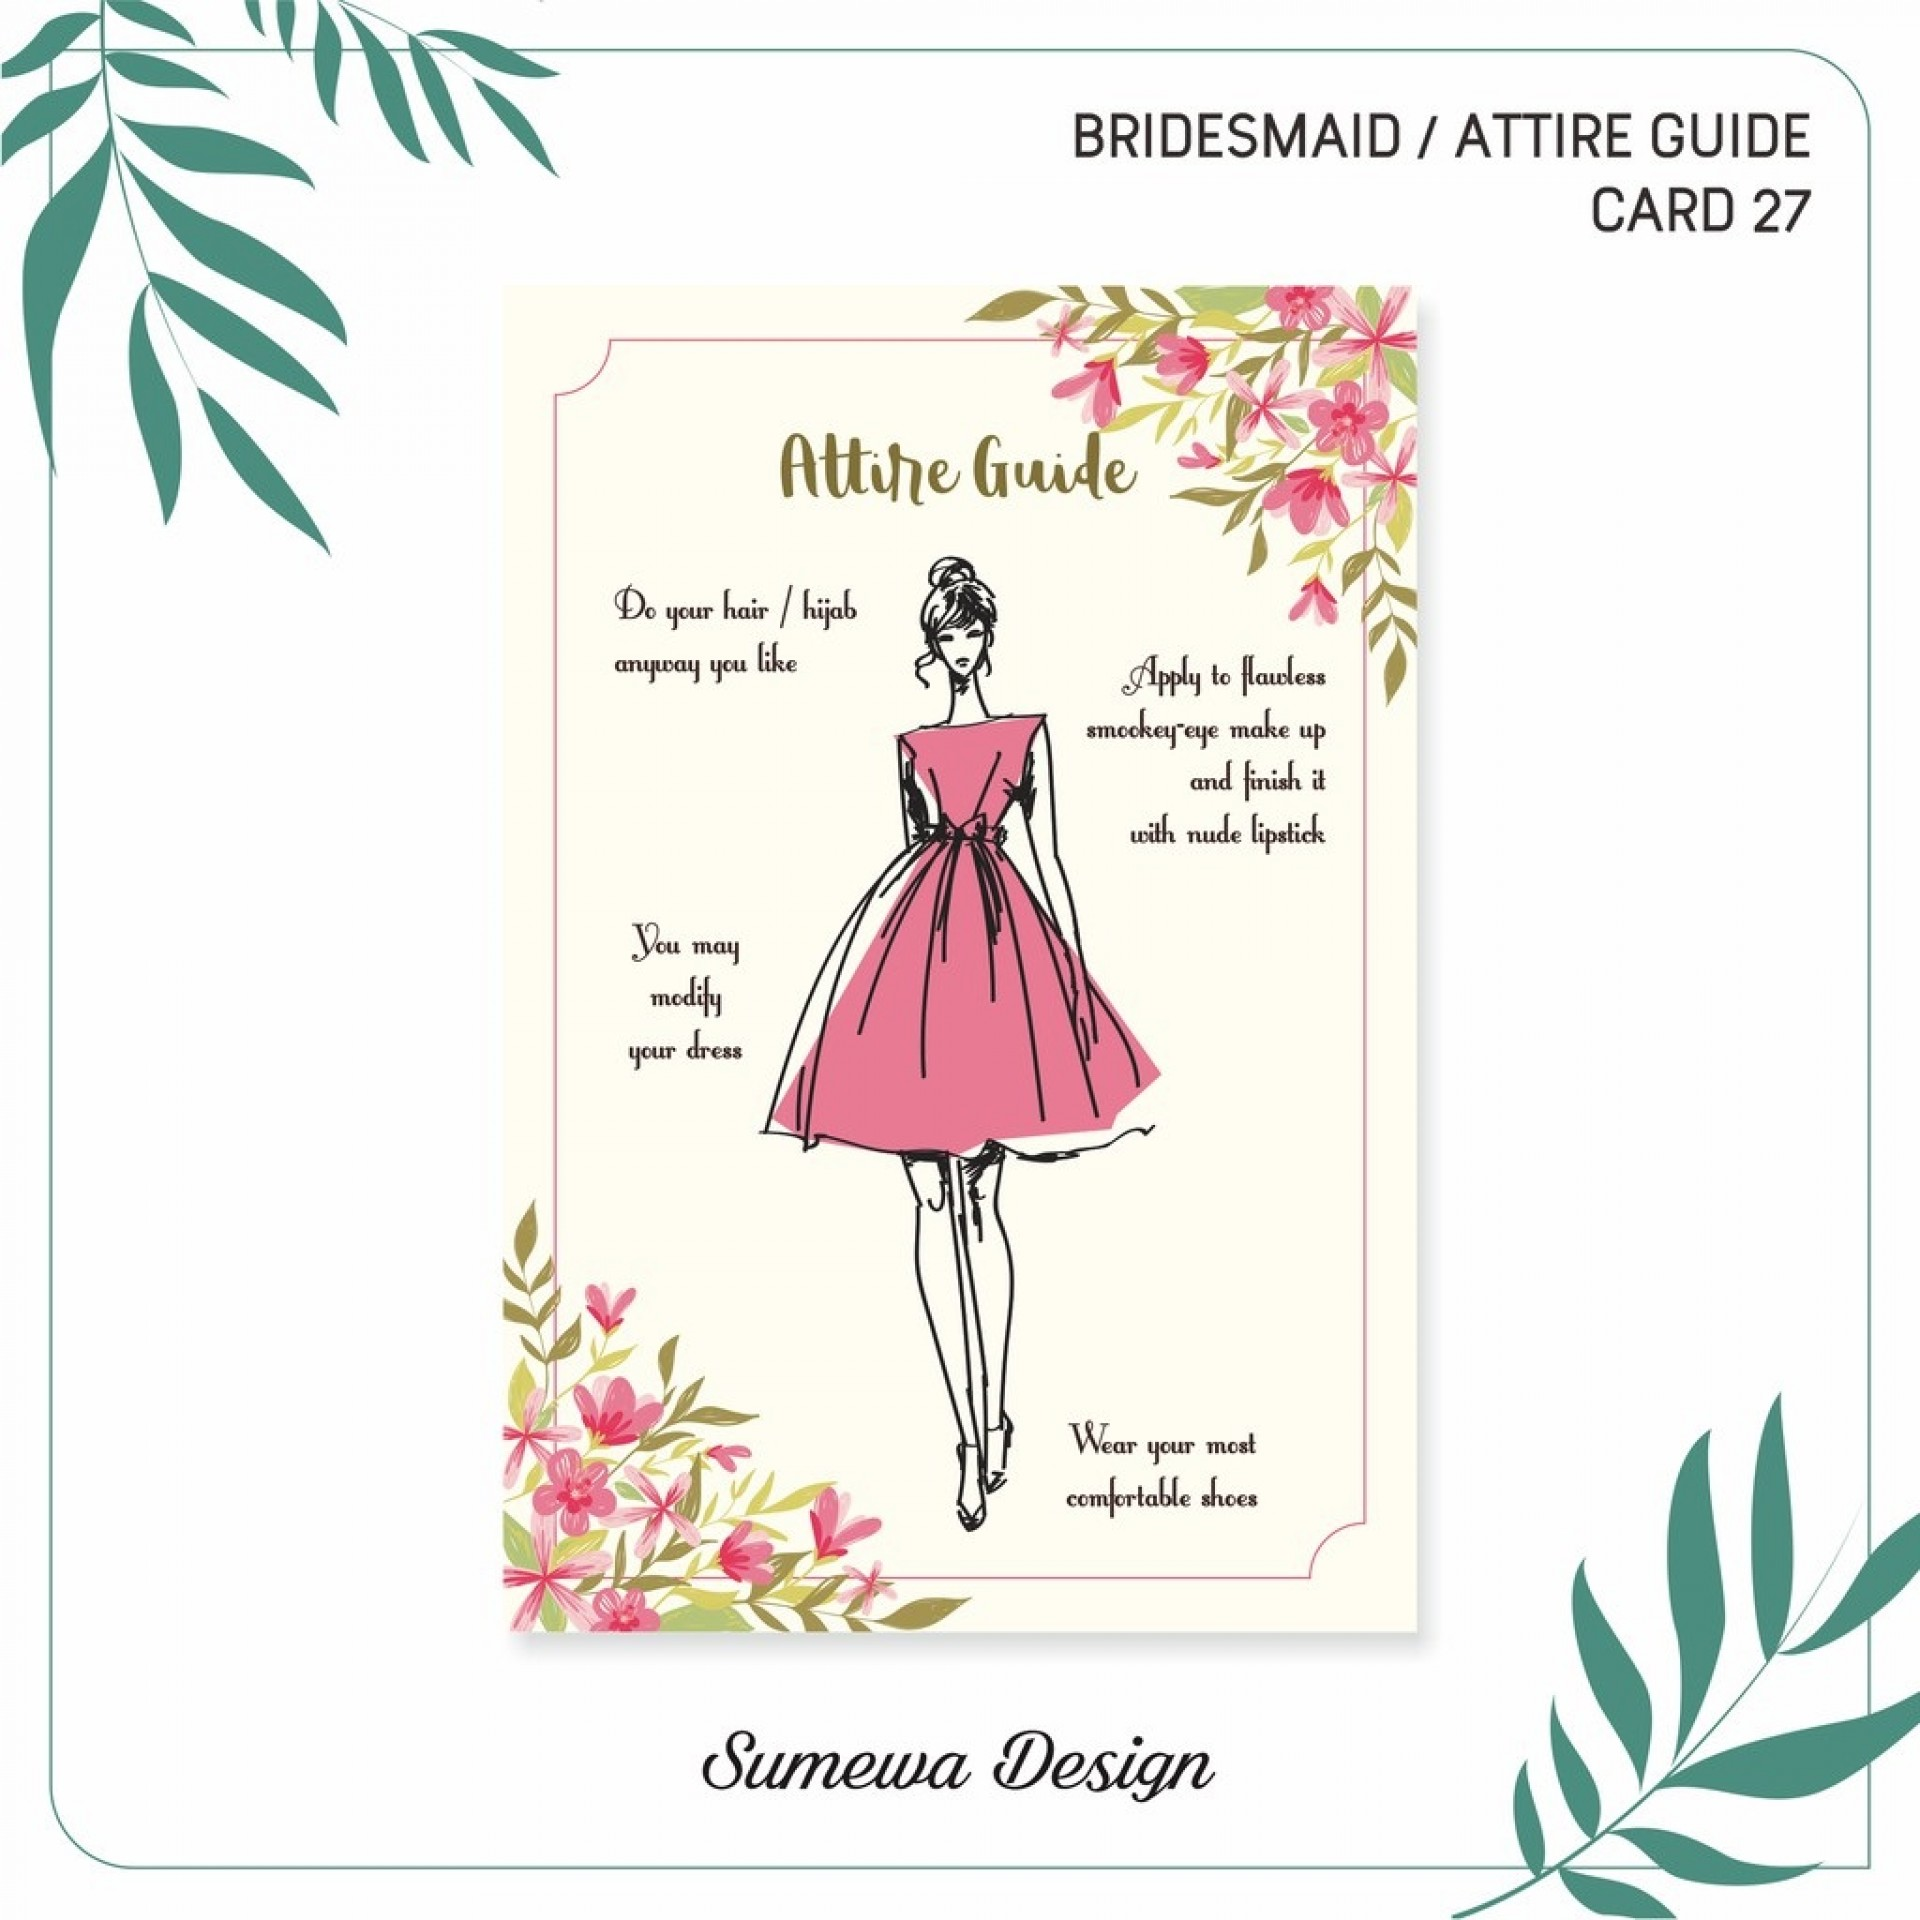 005 Awesome Bridal Shower Card Template High Resolution  Invitation Free Download Bingo1920